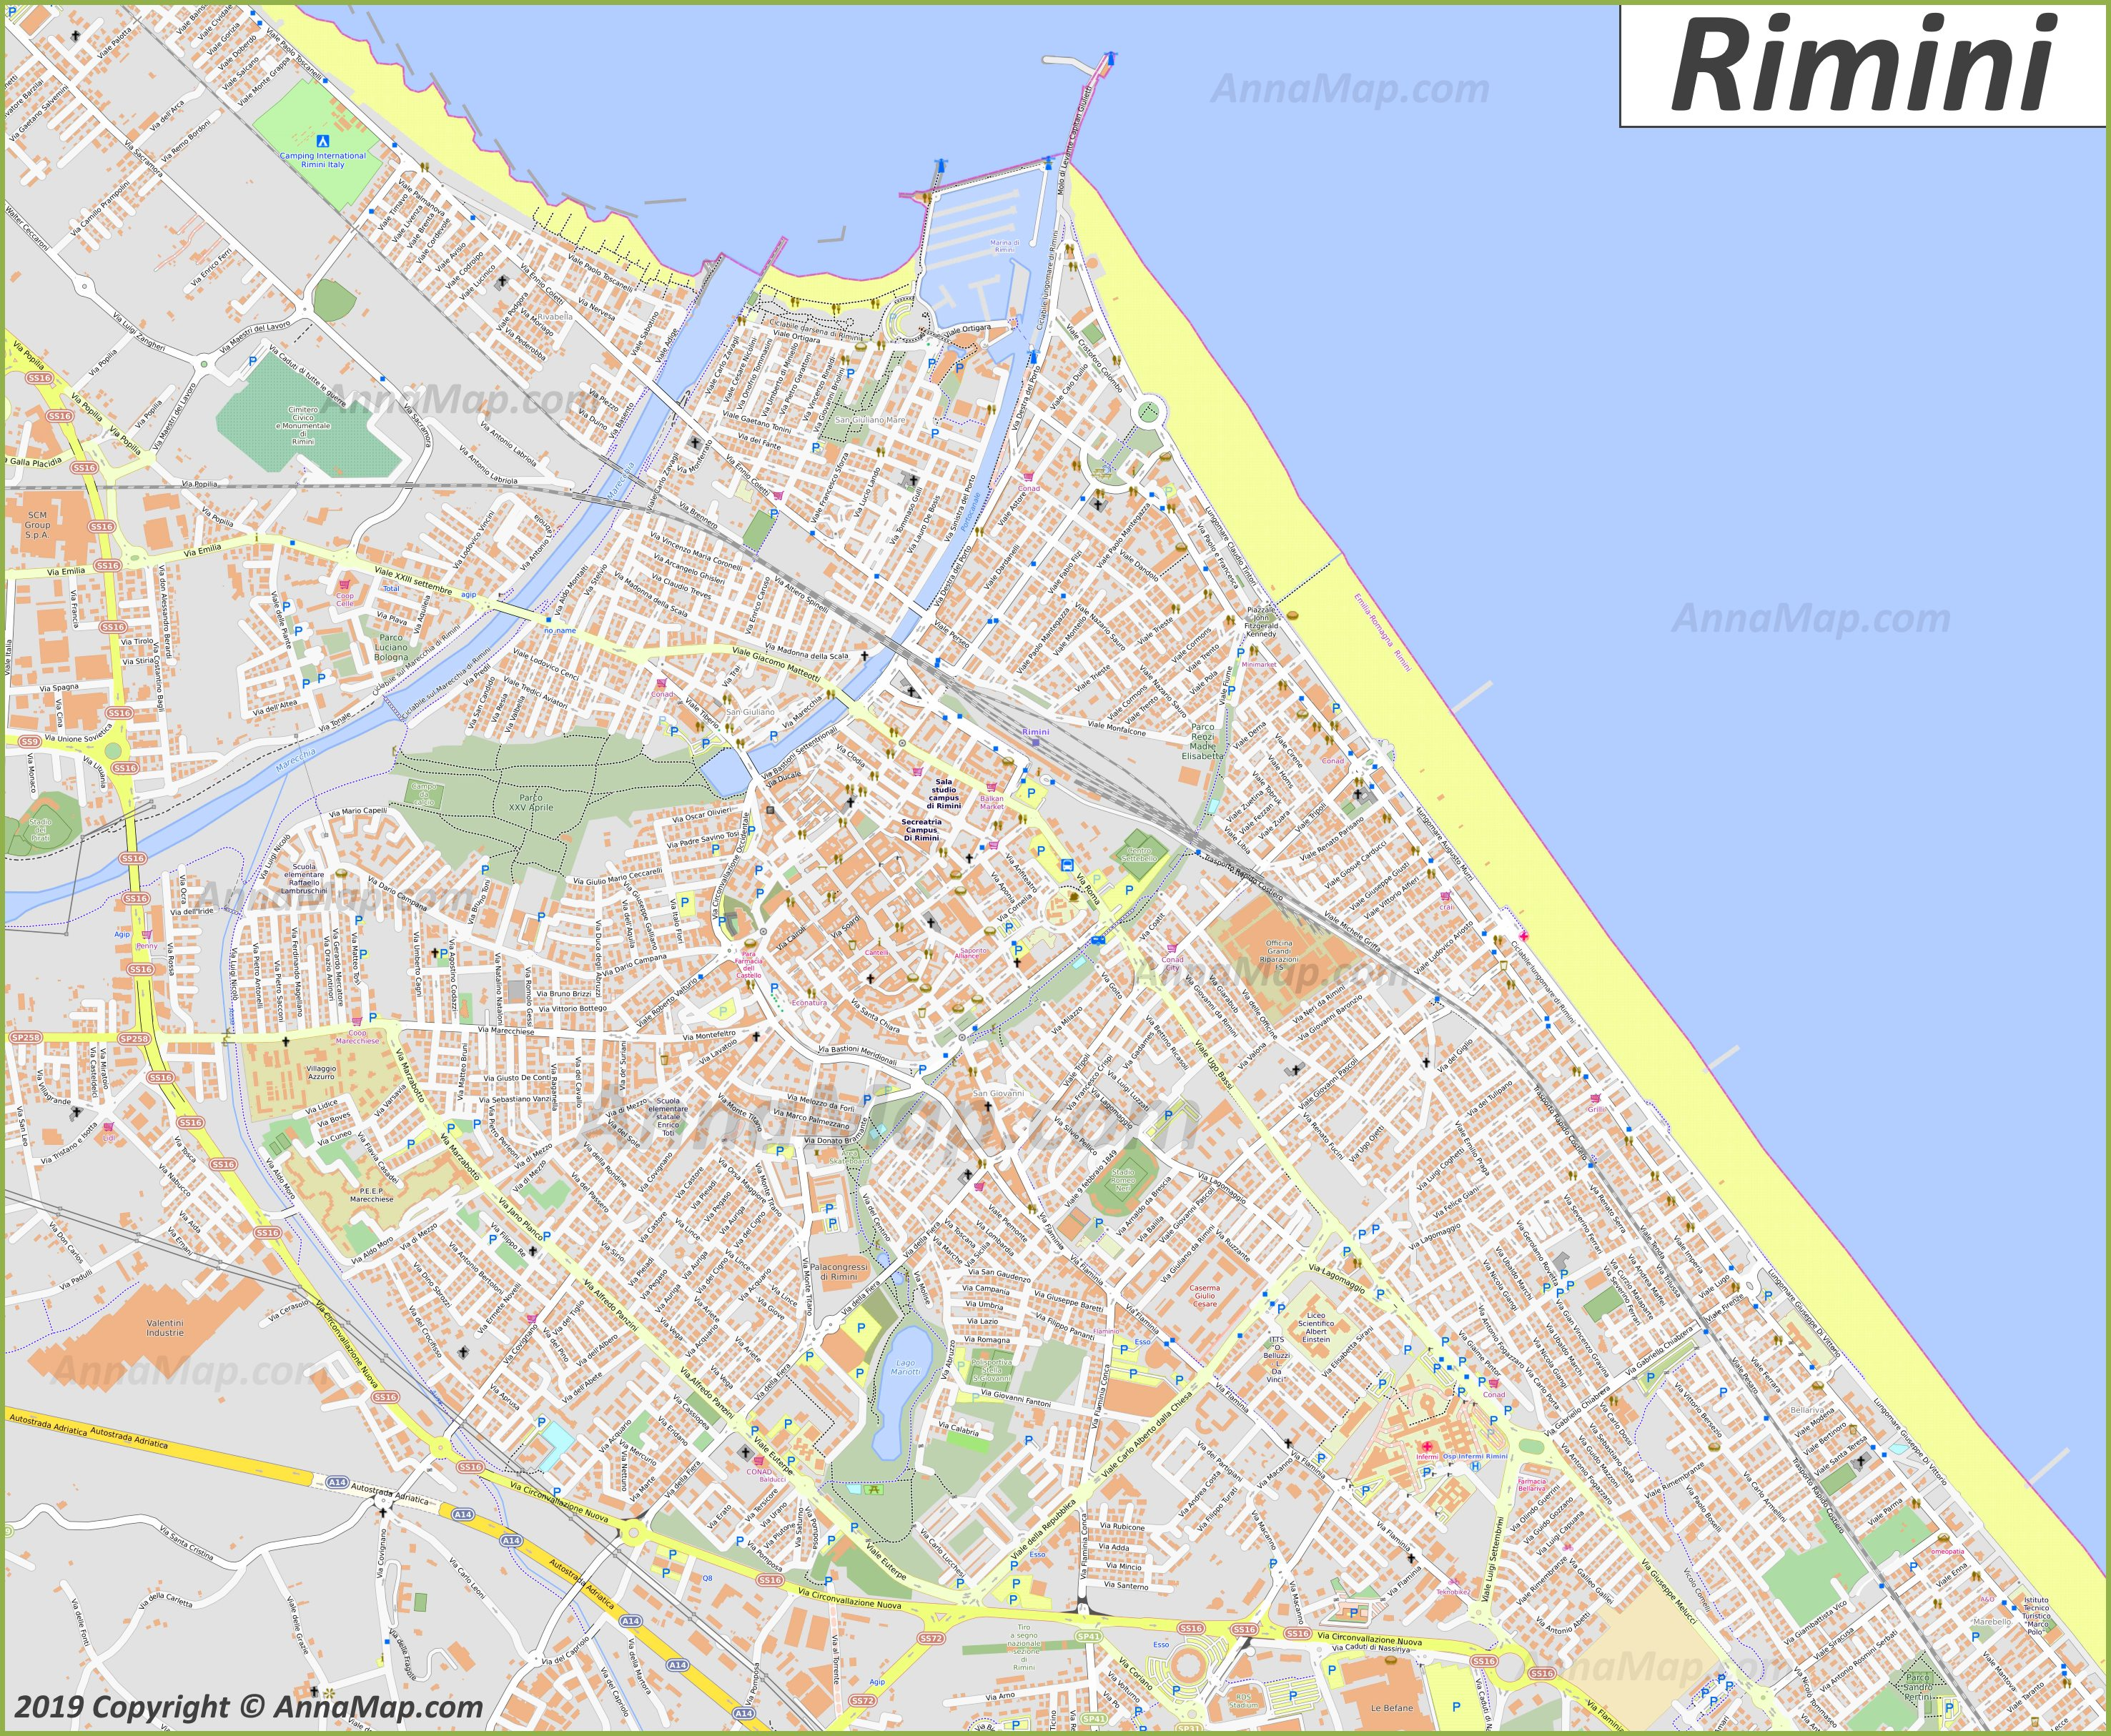 photograph regarding Printable Map of Sicily named Thorough vacationer maps of Rimini Italy No cost printable